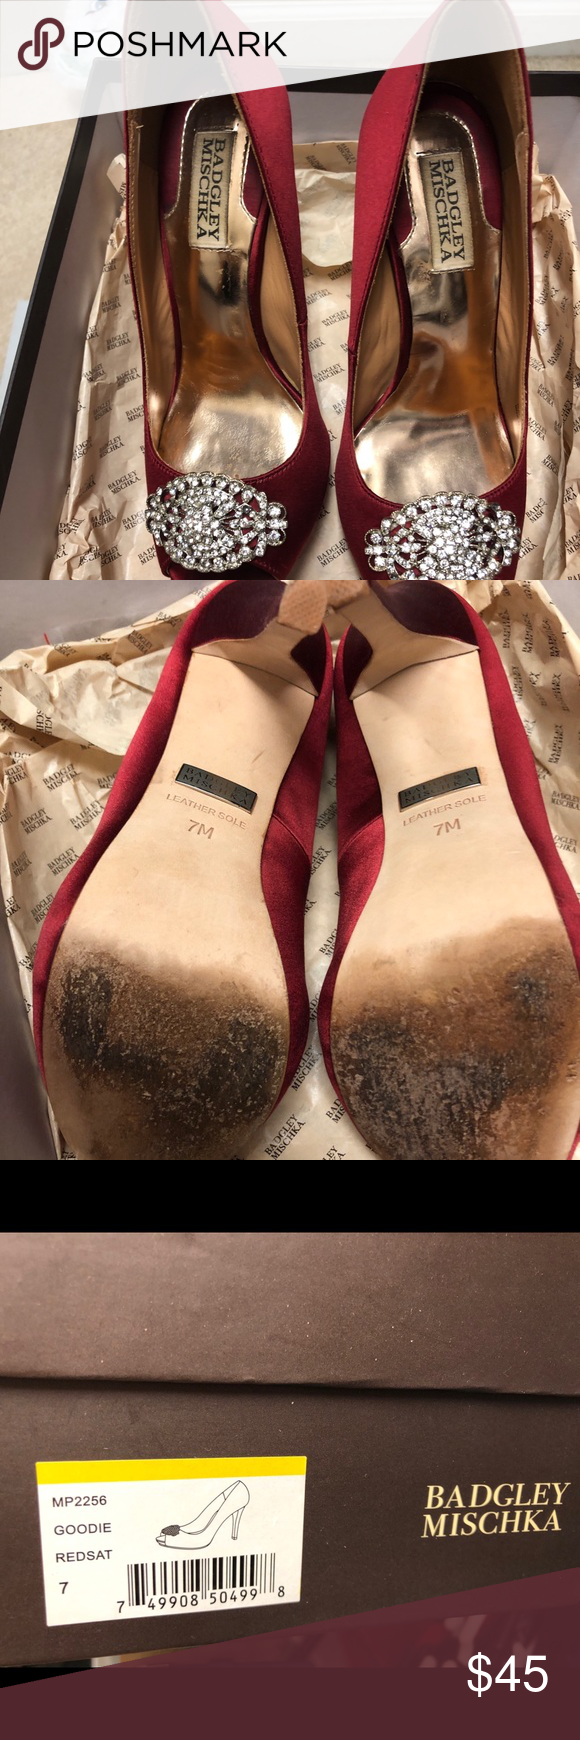 Badgley Mischka wedding shoes Size 7 Badgley Mischka shoes. Worn once for a few ...